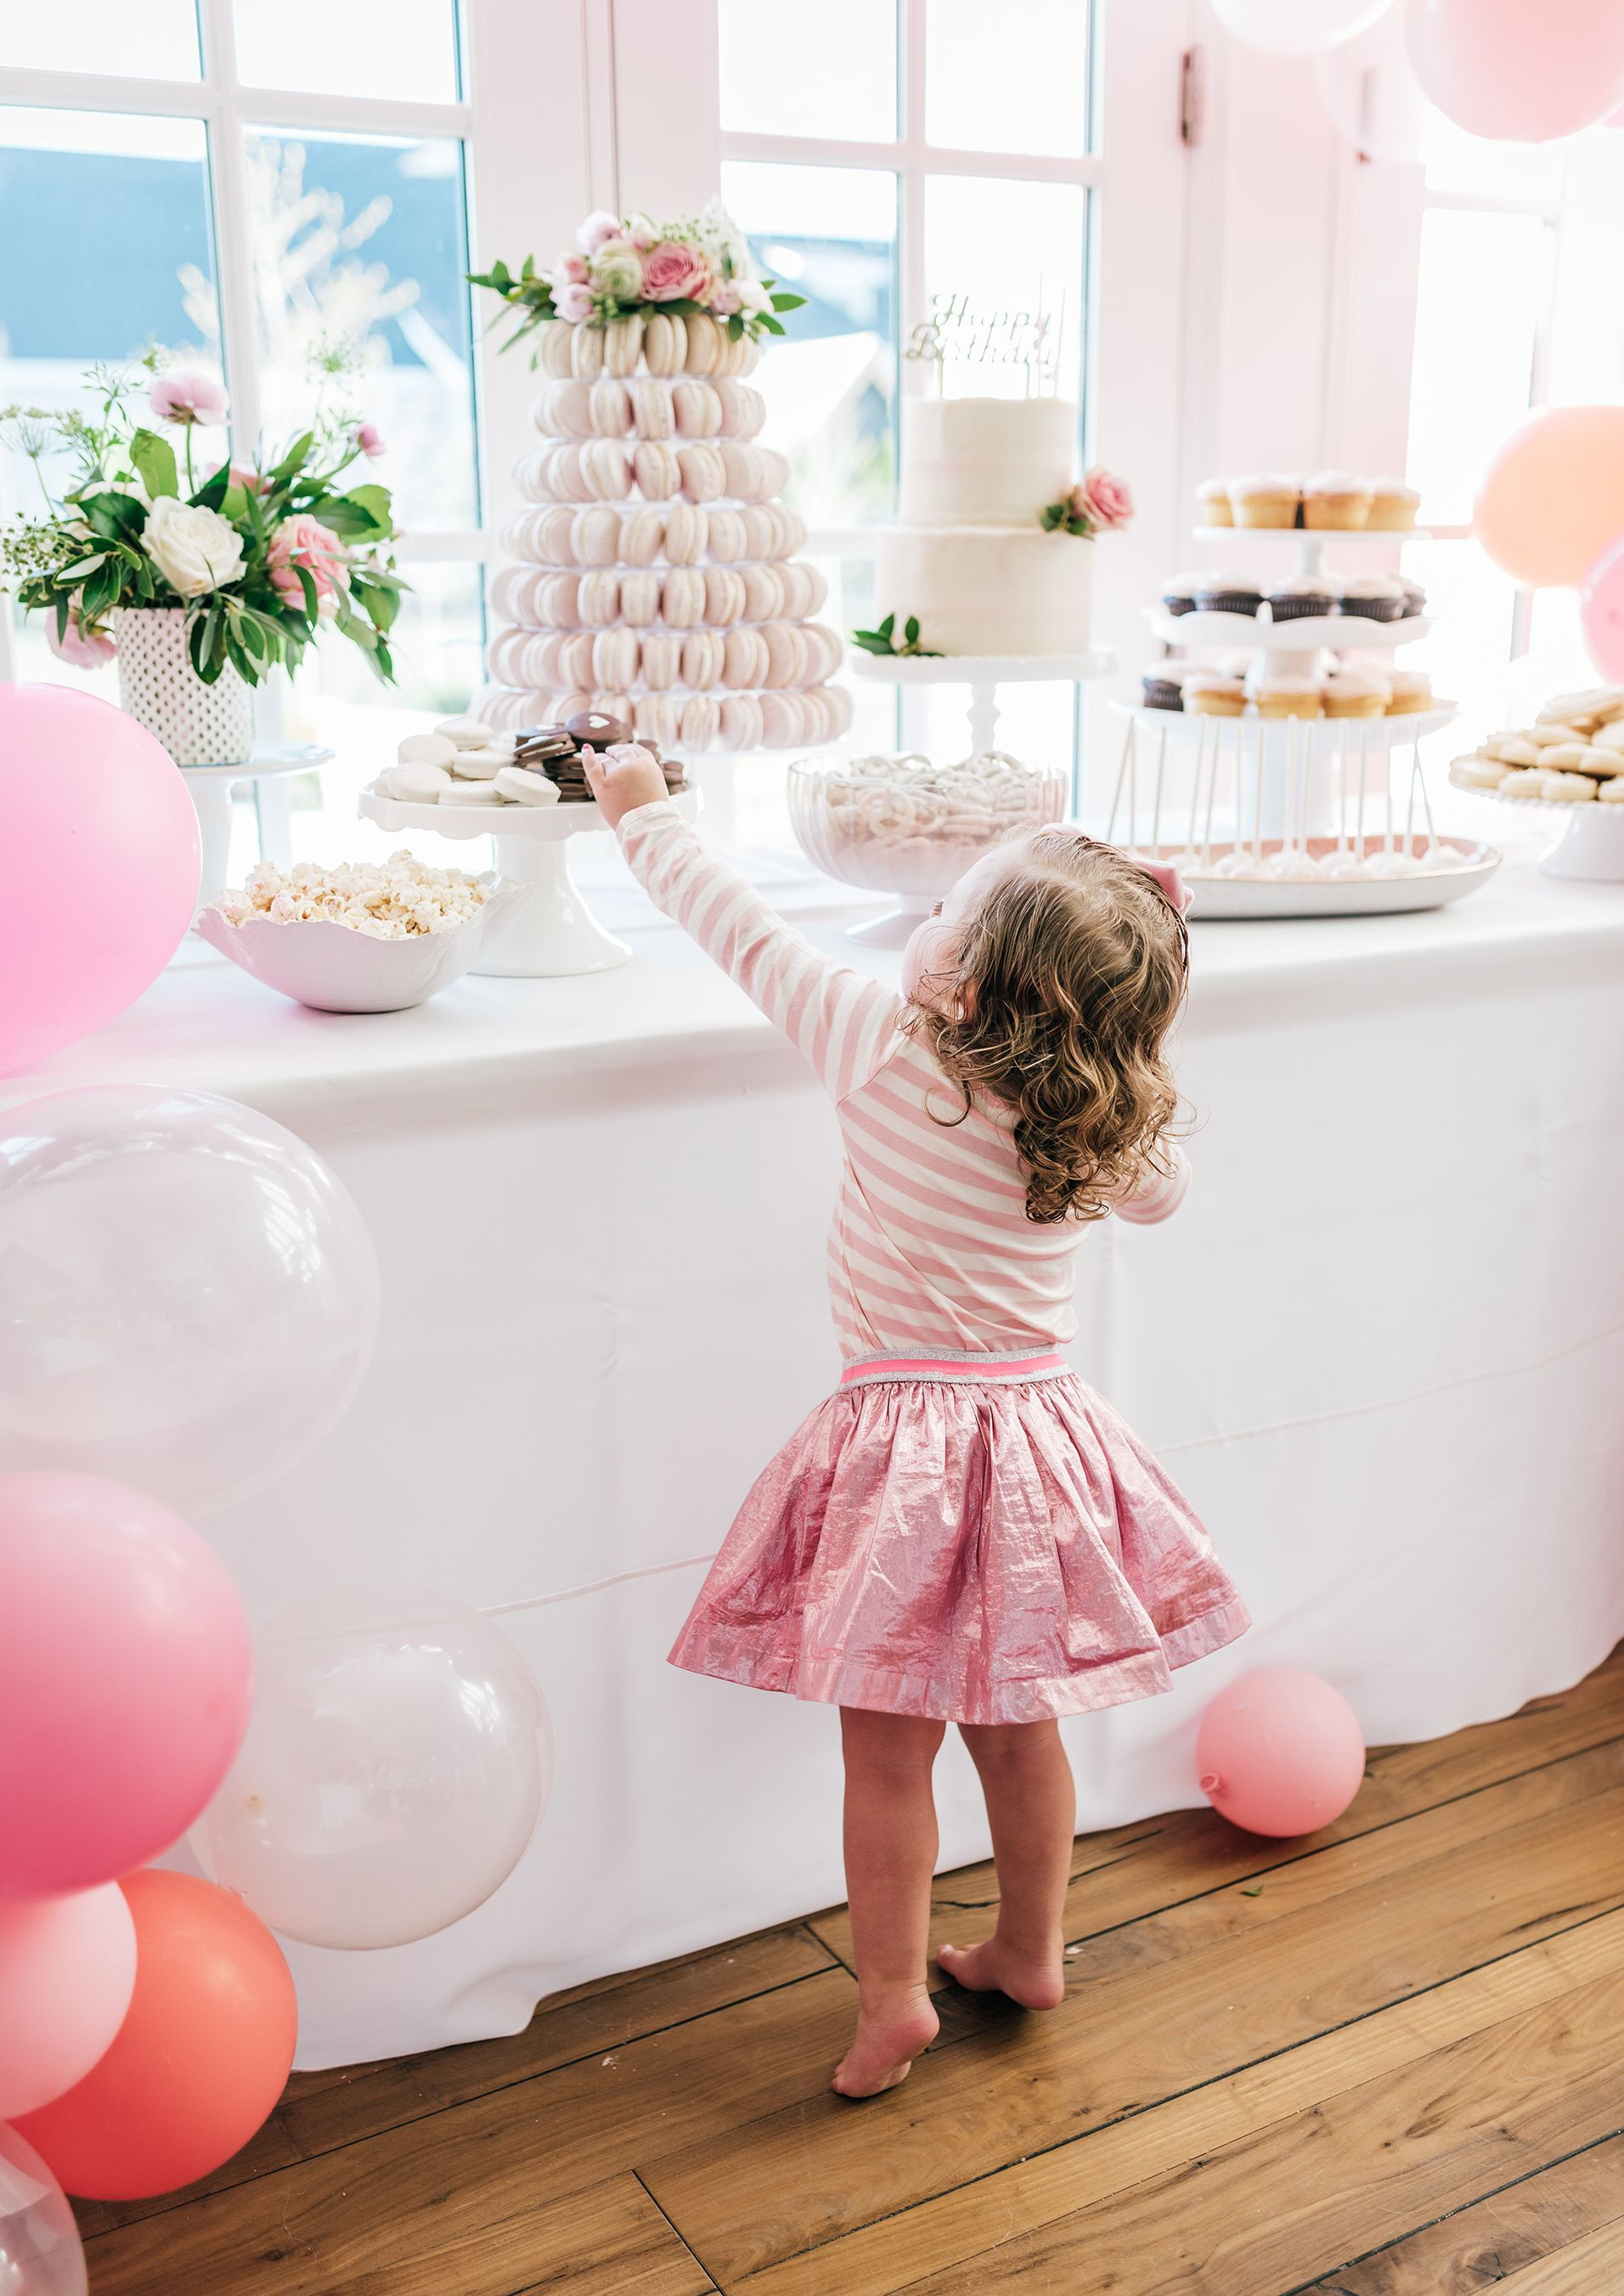 Best ideas about Two Yr Old Birthday Party Ideas . Save or Pin We re So Jealous This Two Year Old s Birthday Party Now.